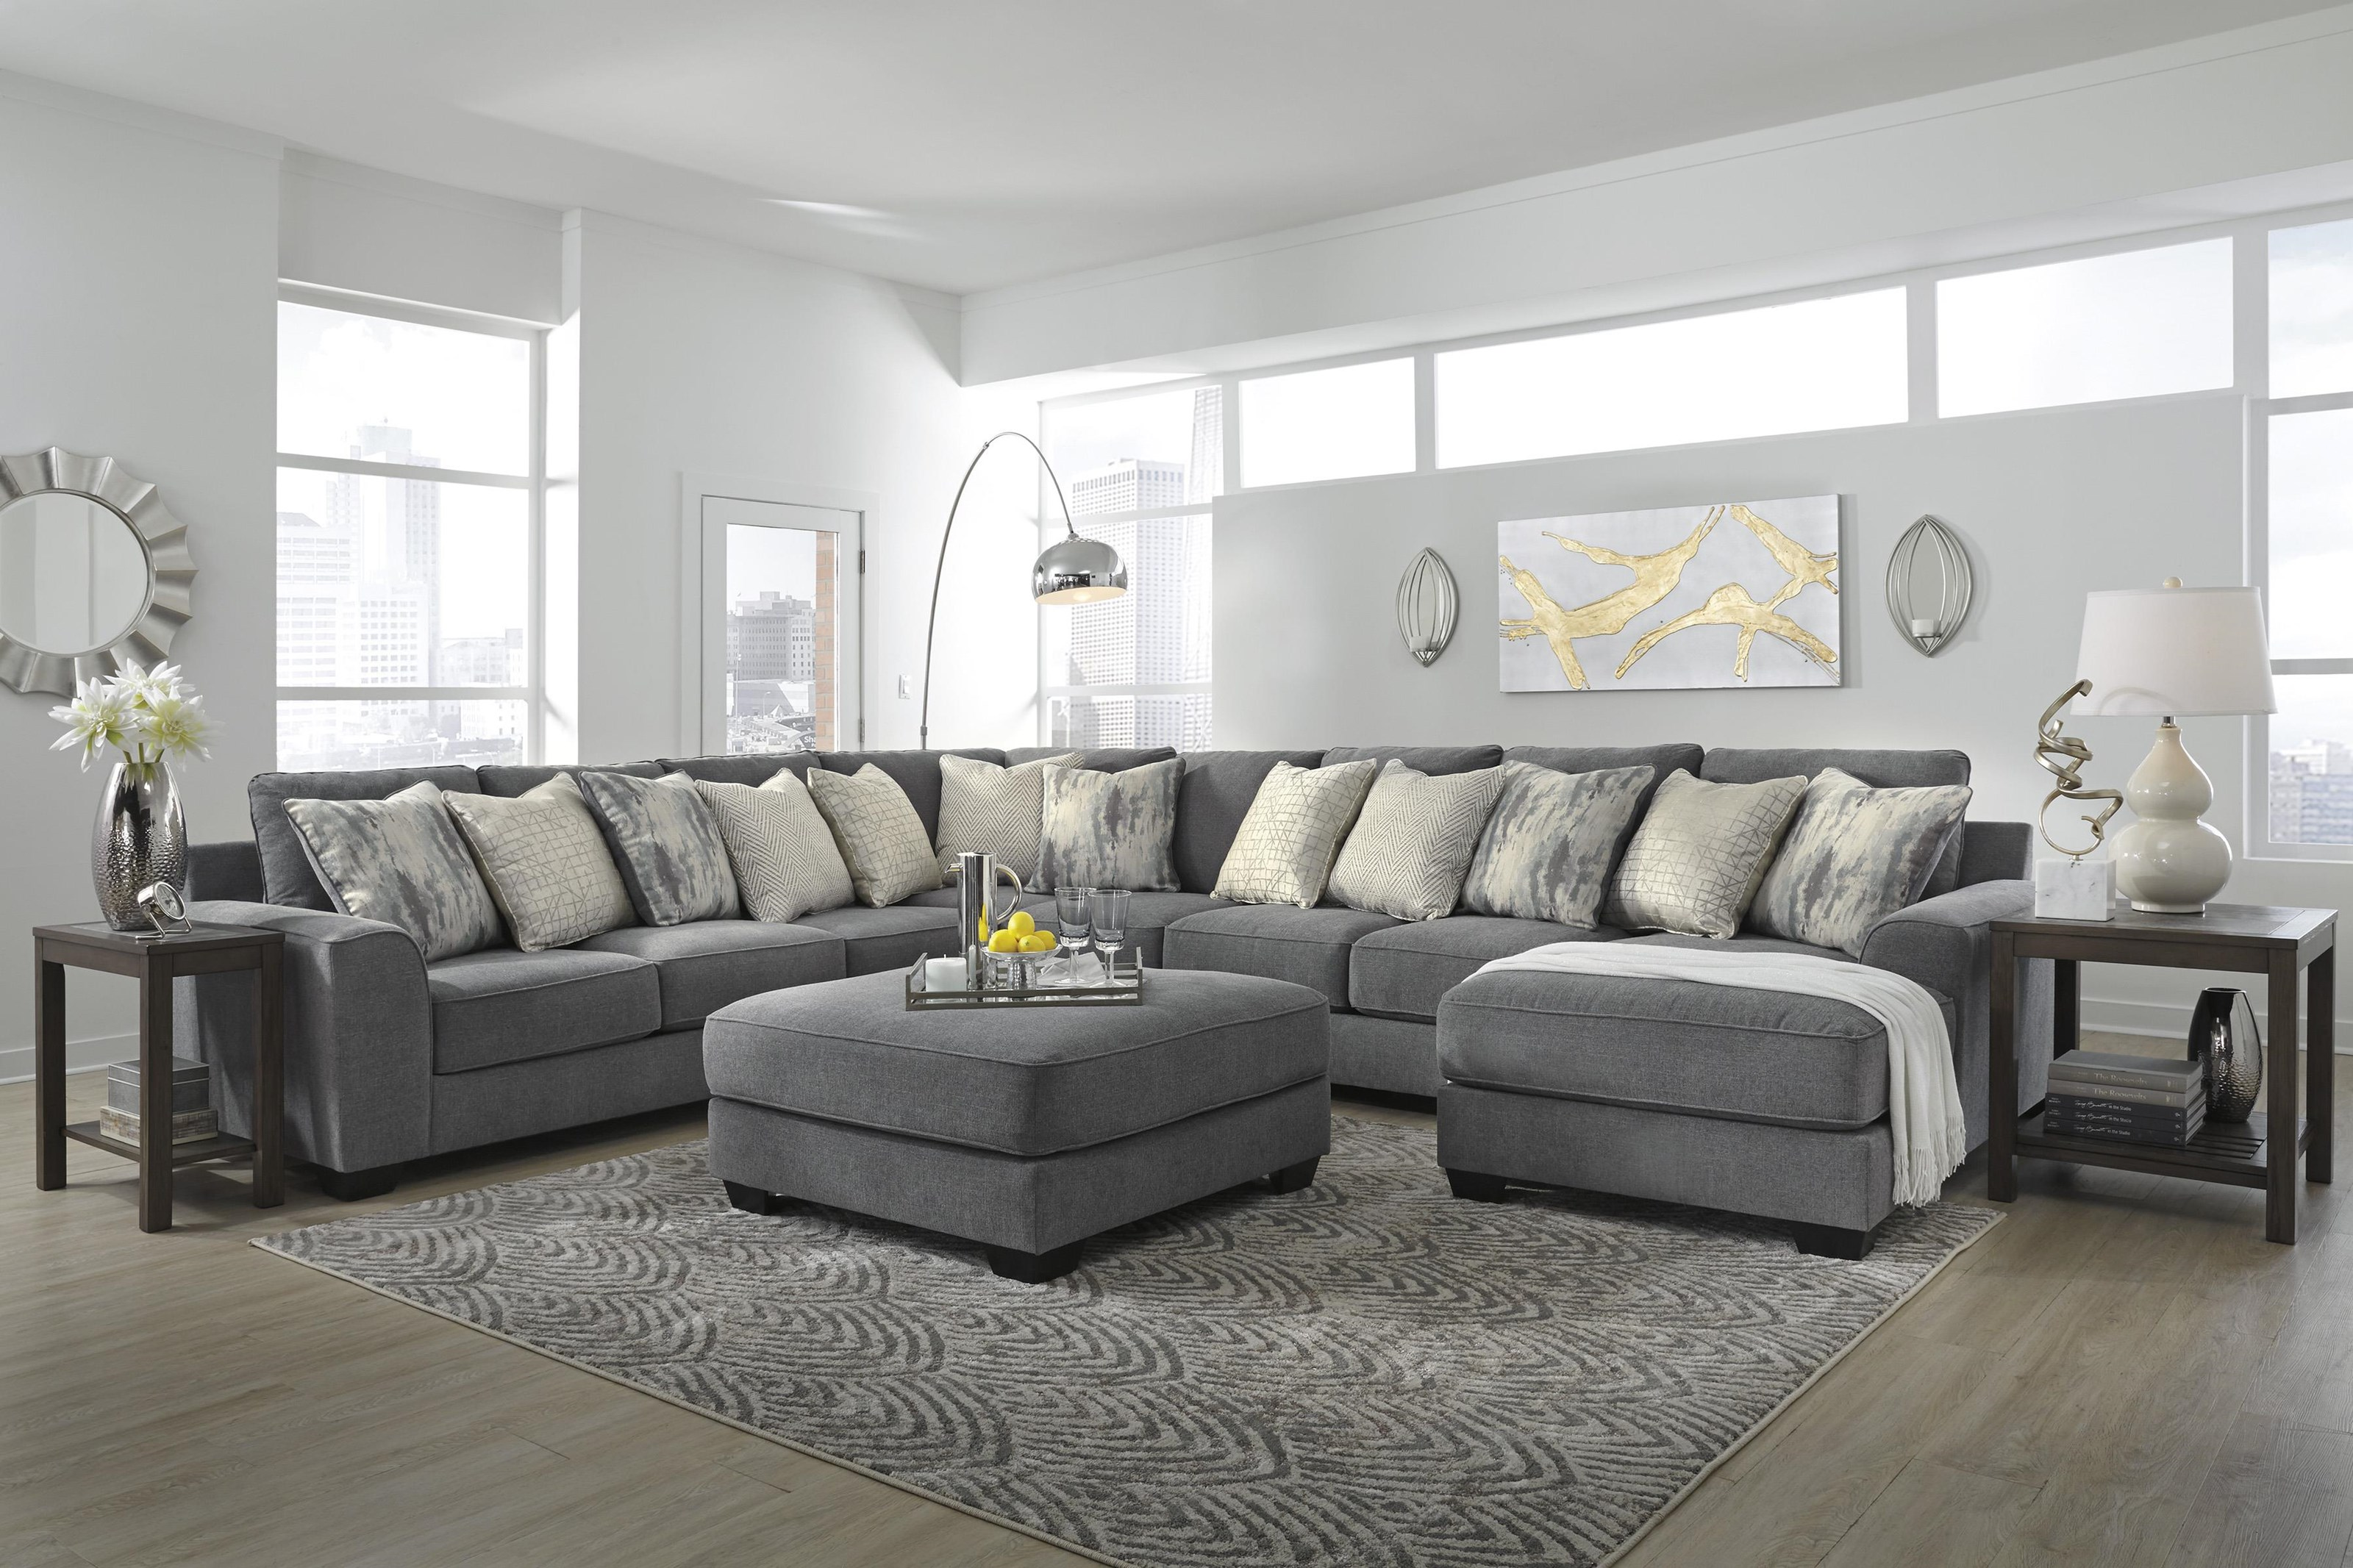 Castano 5 Piece Sectional with Ottoman by Ashley Furniture at Sam Levitz Outlet